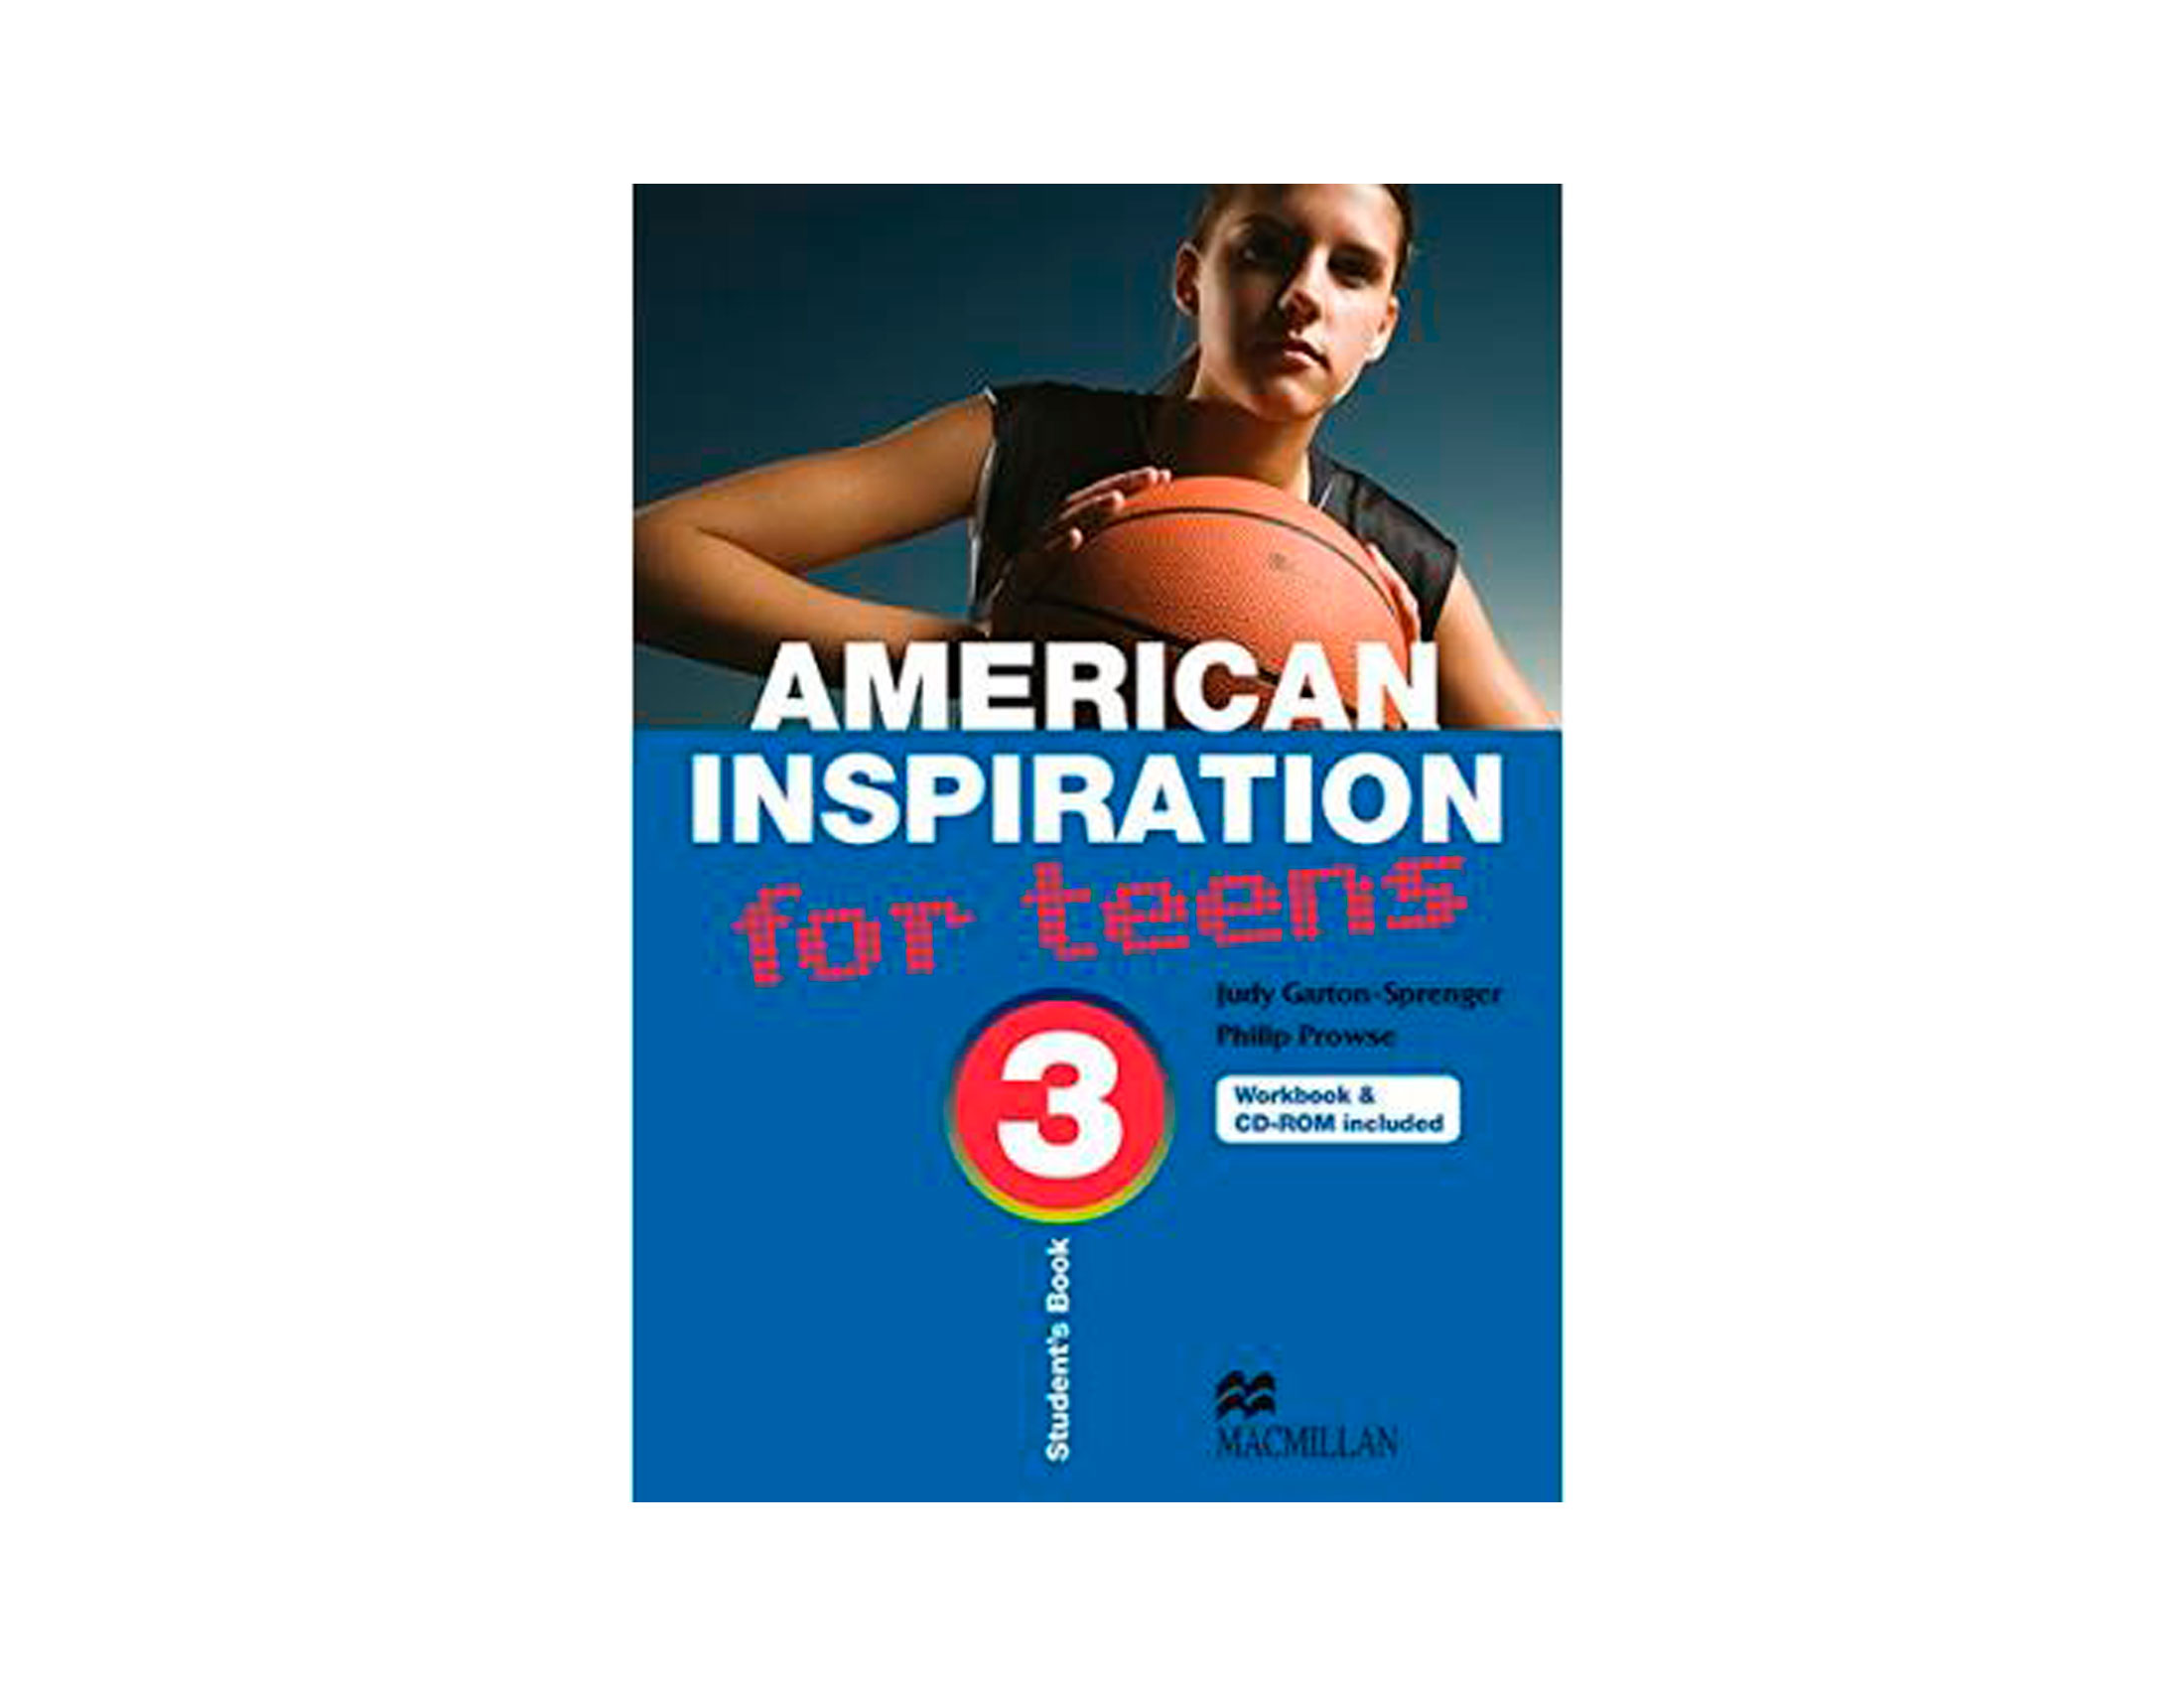 AMERICAN INSPIRATION FOR TEENS STD 3